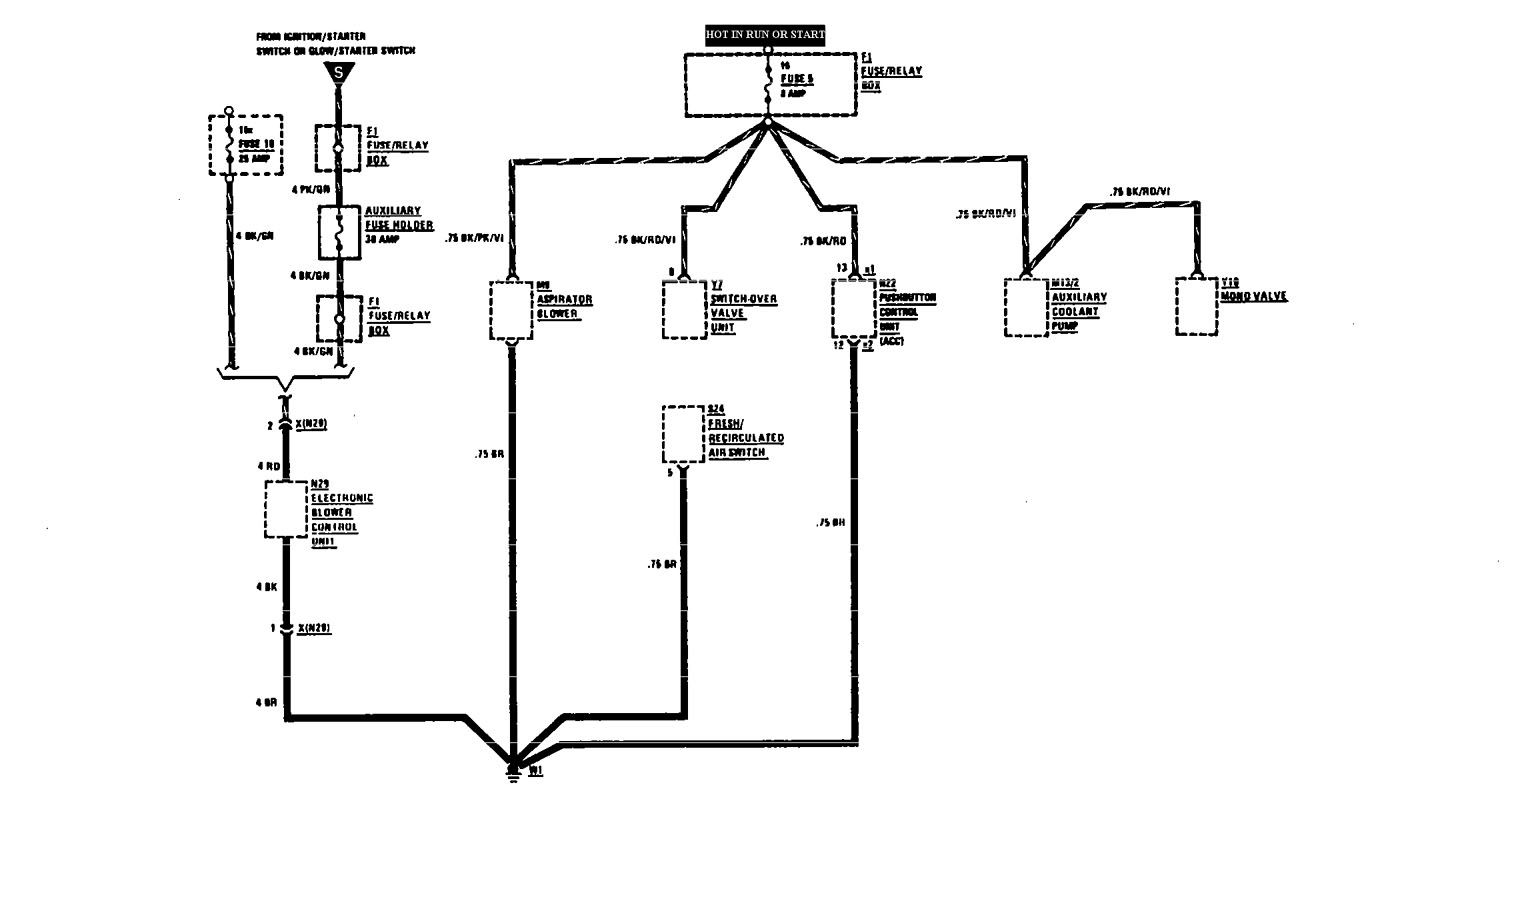 1986 Mercedes Benz 560 Parts Diagram 1986 560SEC 1986 Mercedes Benz 560  Engine Diagram